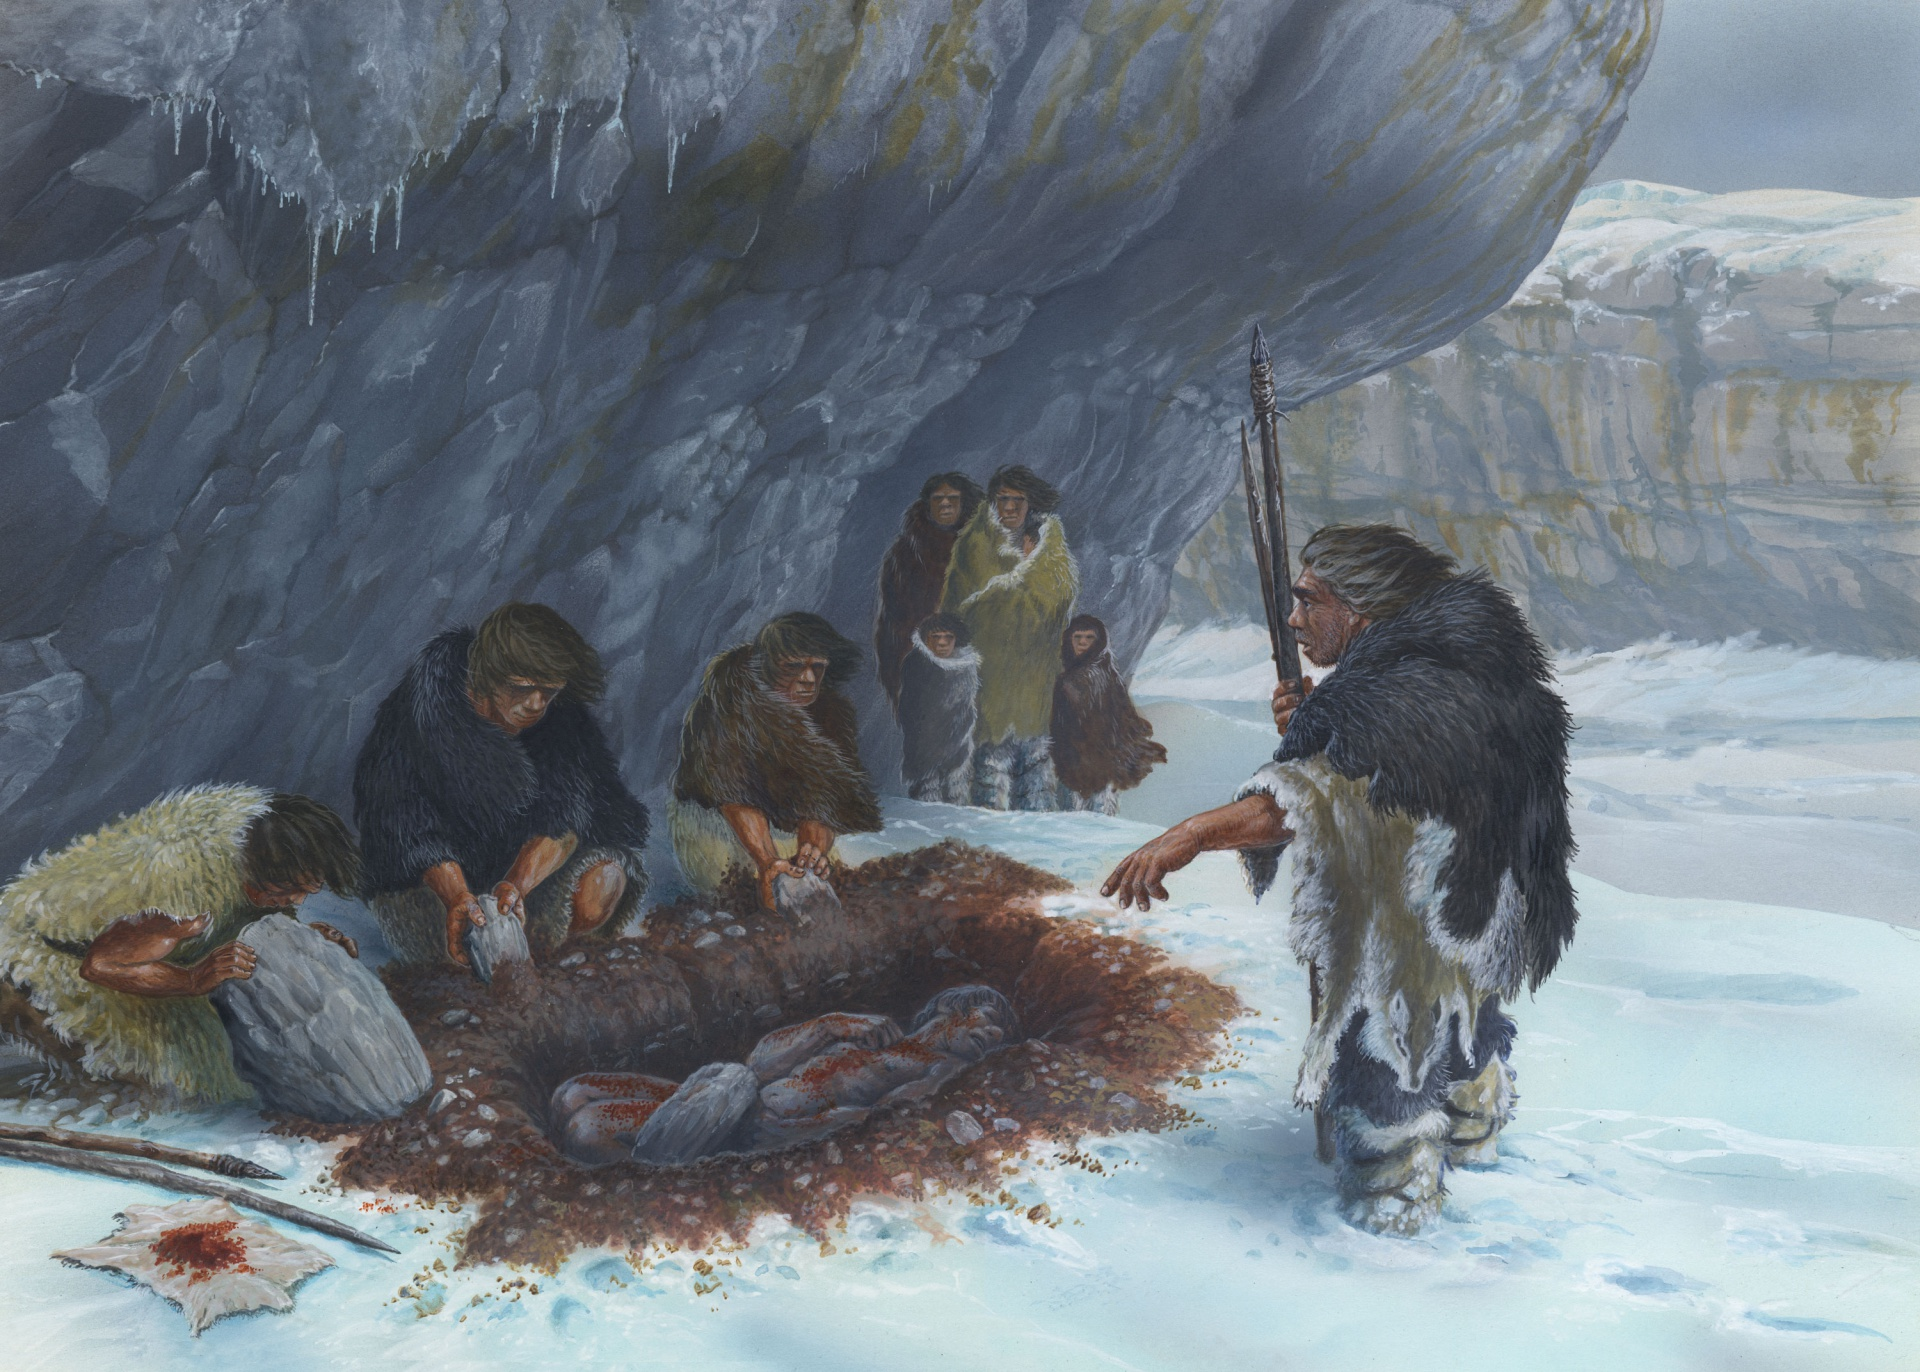 Illustration by Gilles Tosello, representing the burial of a Neanderthal man at the La Ferrassie site (1988)